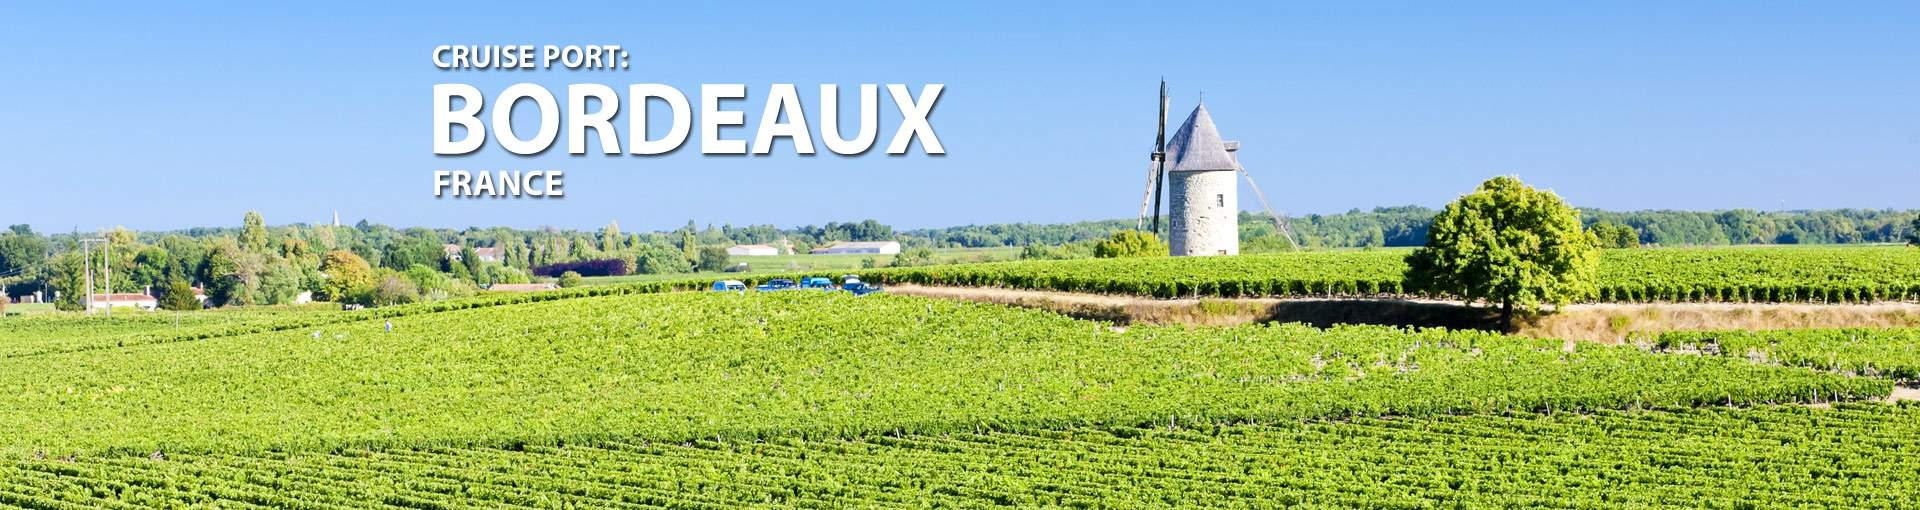 Cruises from Bordeaux, France